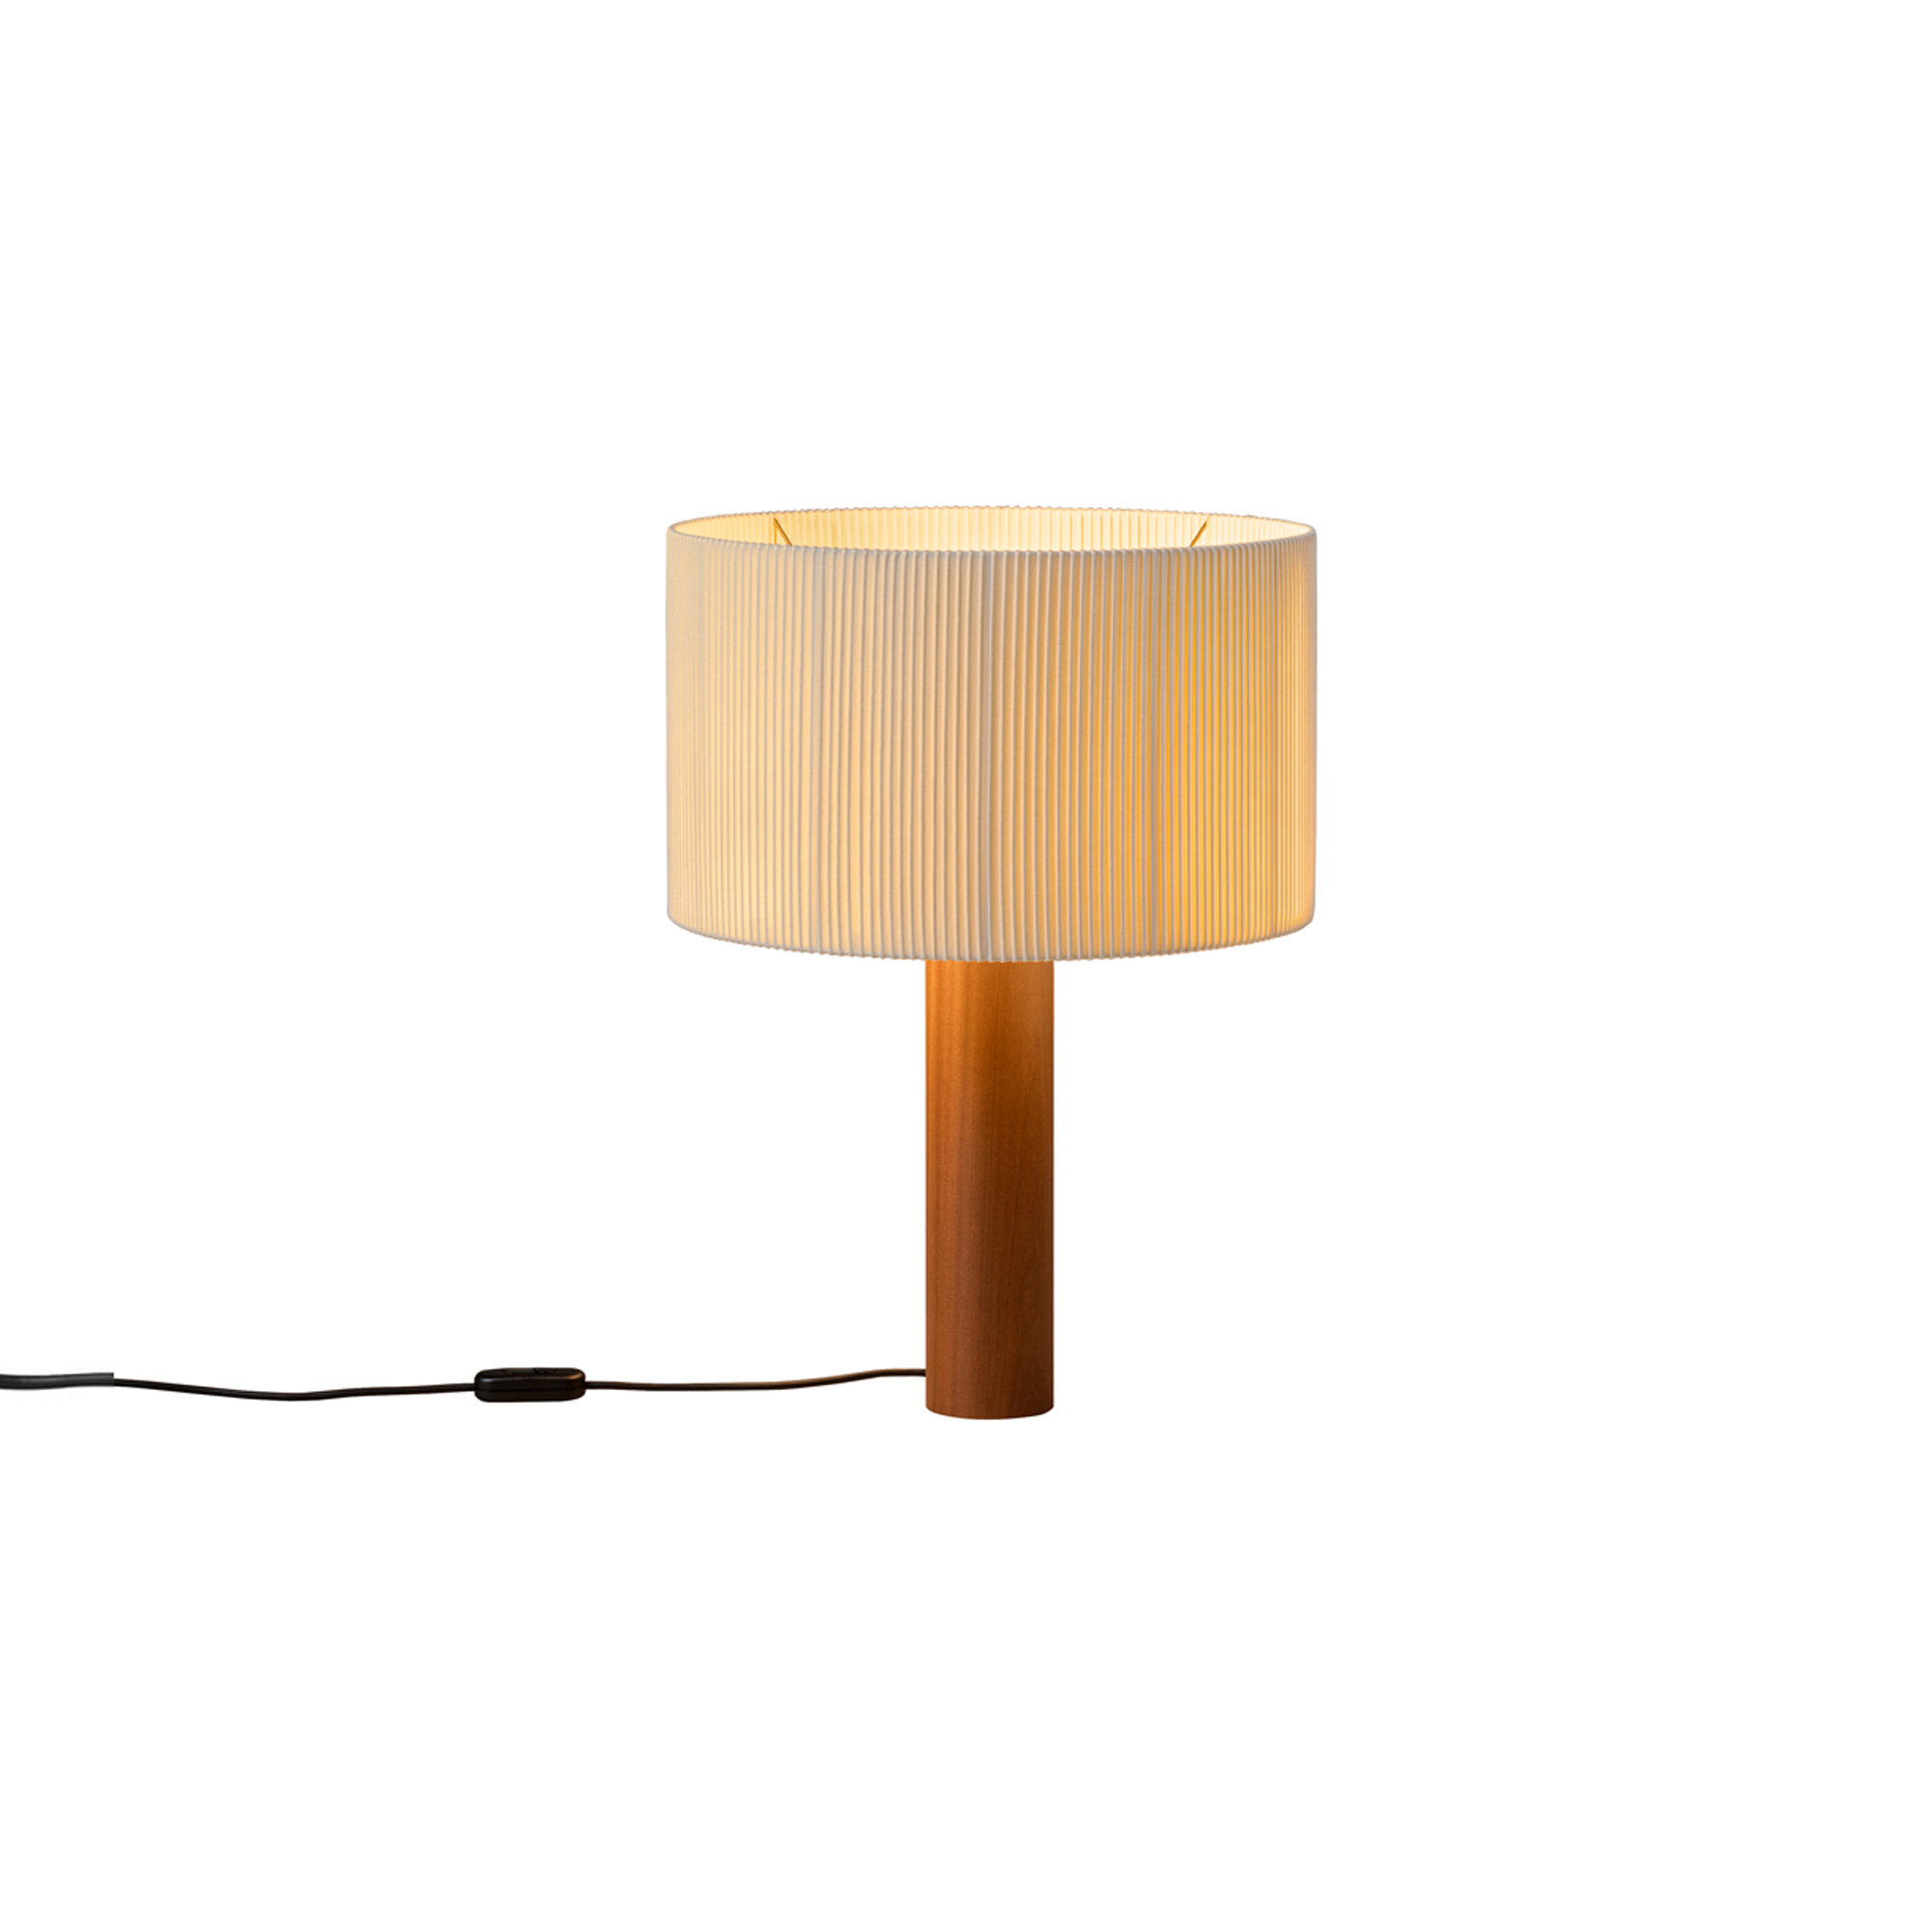 Moragas Table Lamp - A sturdy wood cylinder supports a head with three bulbs arranged radially and outwards, surrounded by a generous circular shade. The shade is made from cotton ribbon (typically used for bookbinding) and has a silk thread running along the edge, forming an asymmetry that creates a splendid contrast of light and shadow.  | Matter of Stuff